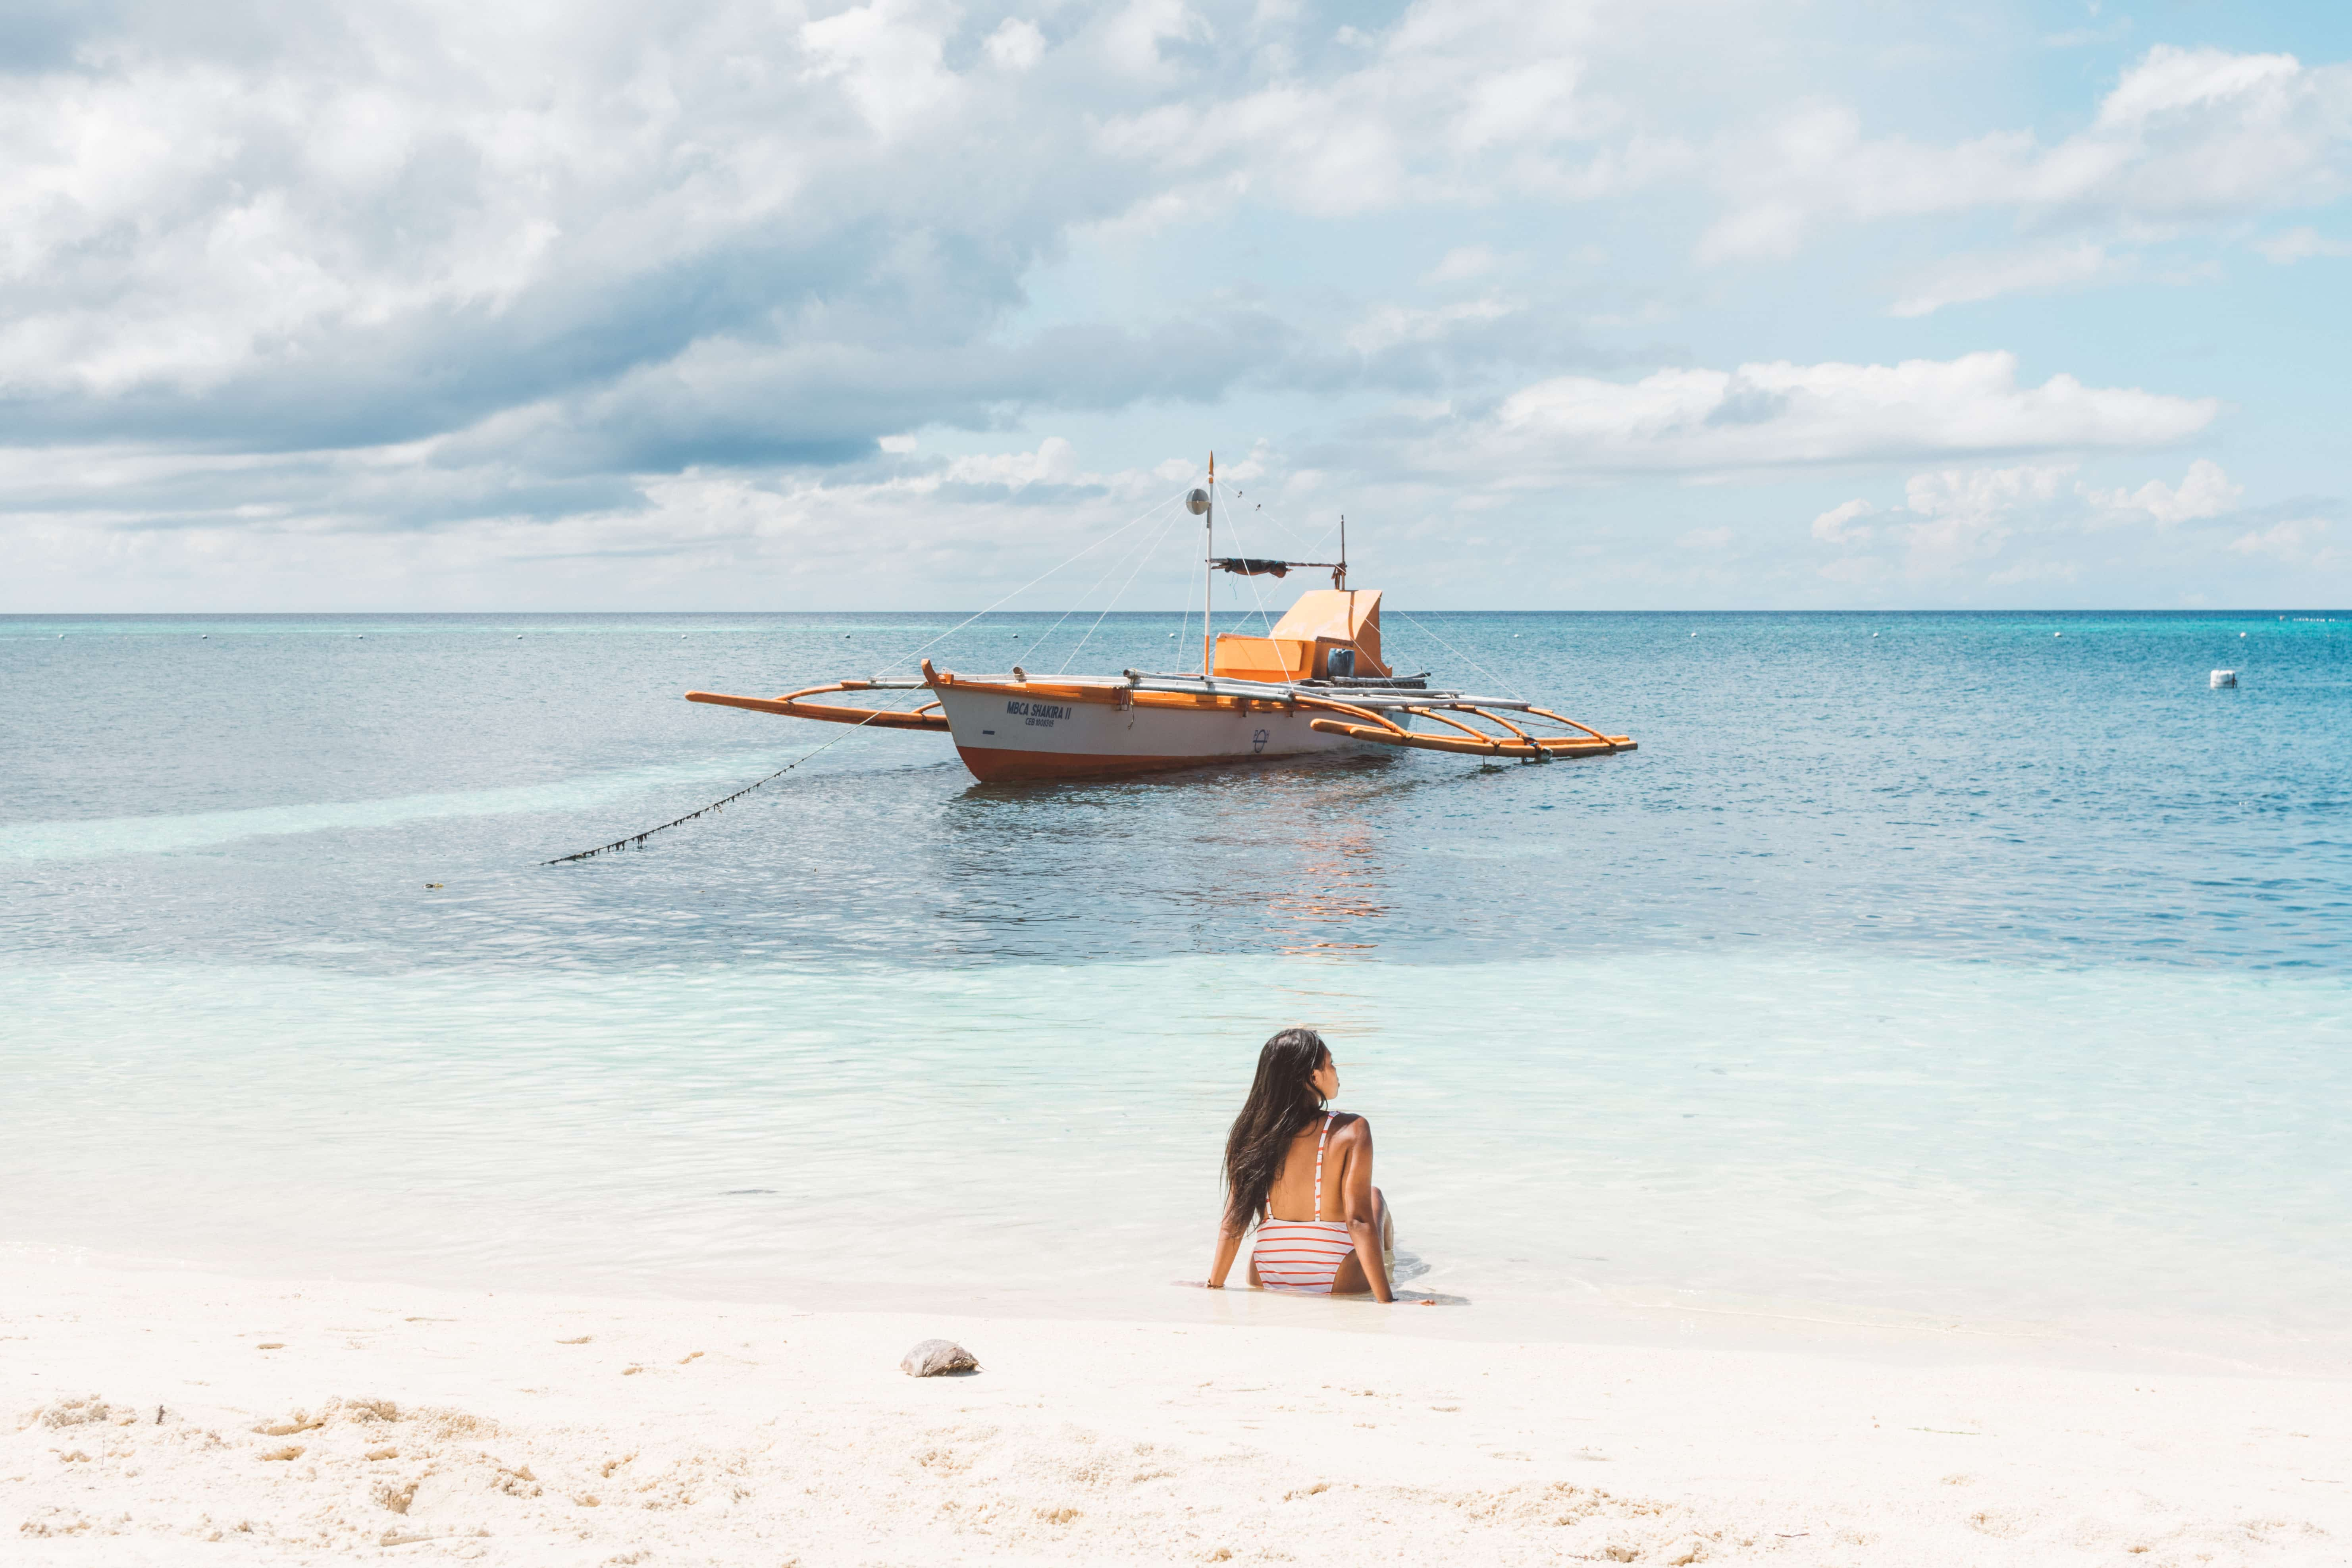 Siquijor Itinerary, things to do in siquijor, siquijor travel guide, siquijor tourist spots, salagdoong beach, siquijor hotels, siquijor to cebu, siquijor beach, siquijor island, siquijor, siquijor island tourist attractions,siquijor tourist spots 2017,siquijor itinerary, siquijor philippines, siquijor tourist spots pictures, san juan siquijor, where to eat in siquijor,lazi siquijor philippines